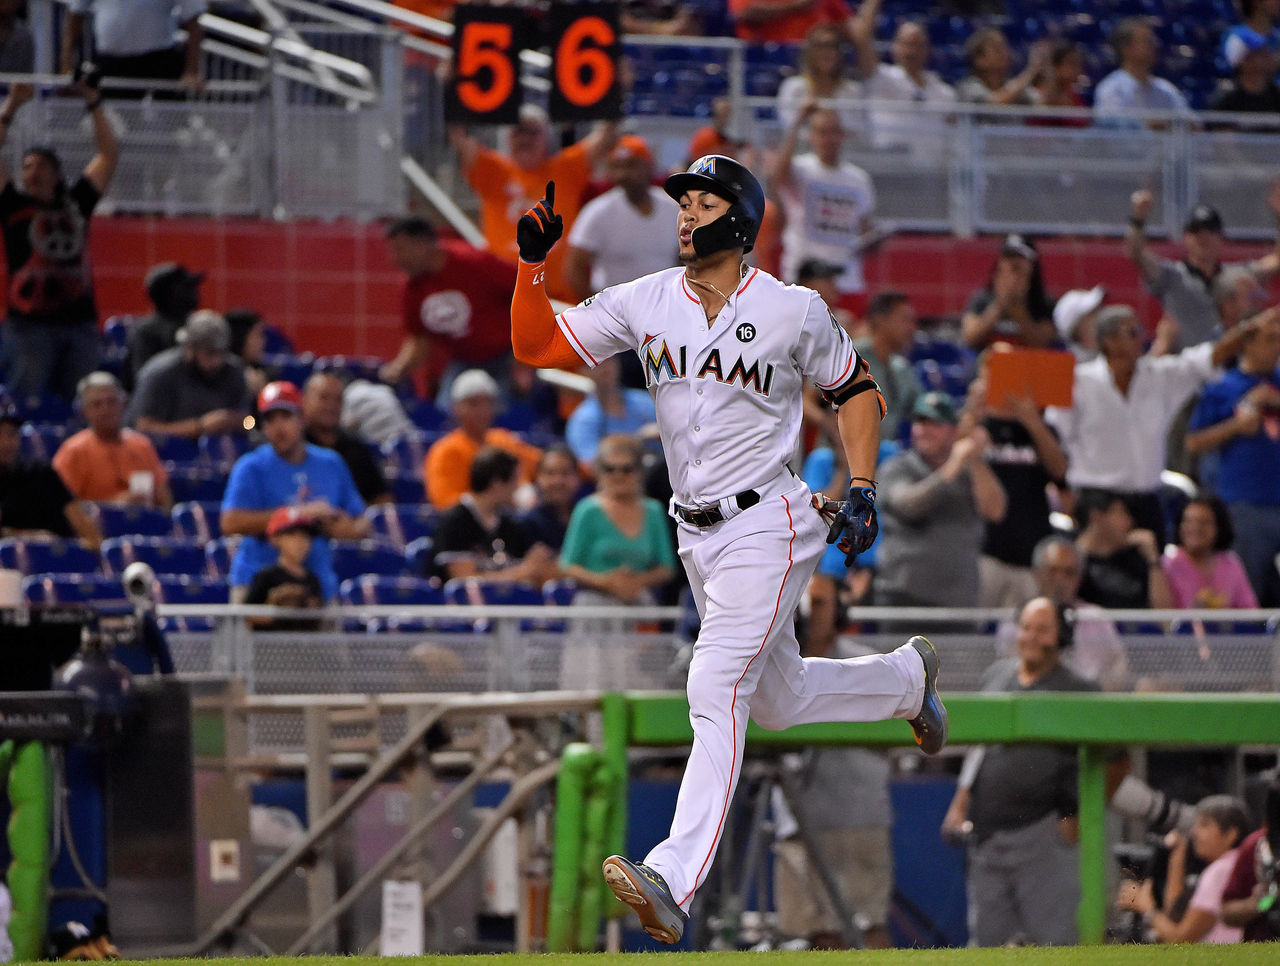 Cropped 2017 09 20t200631z 268294817 nocid rtrmadp 3 mlb new york mets at miami marlins